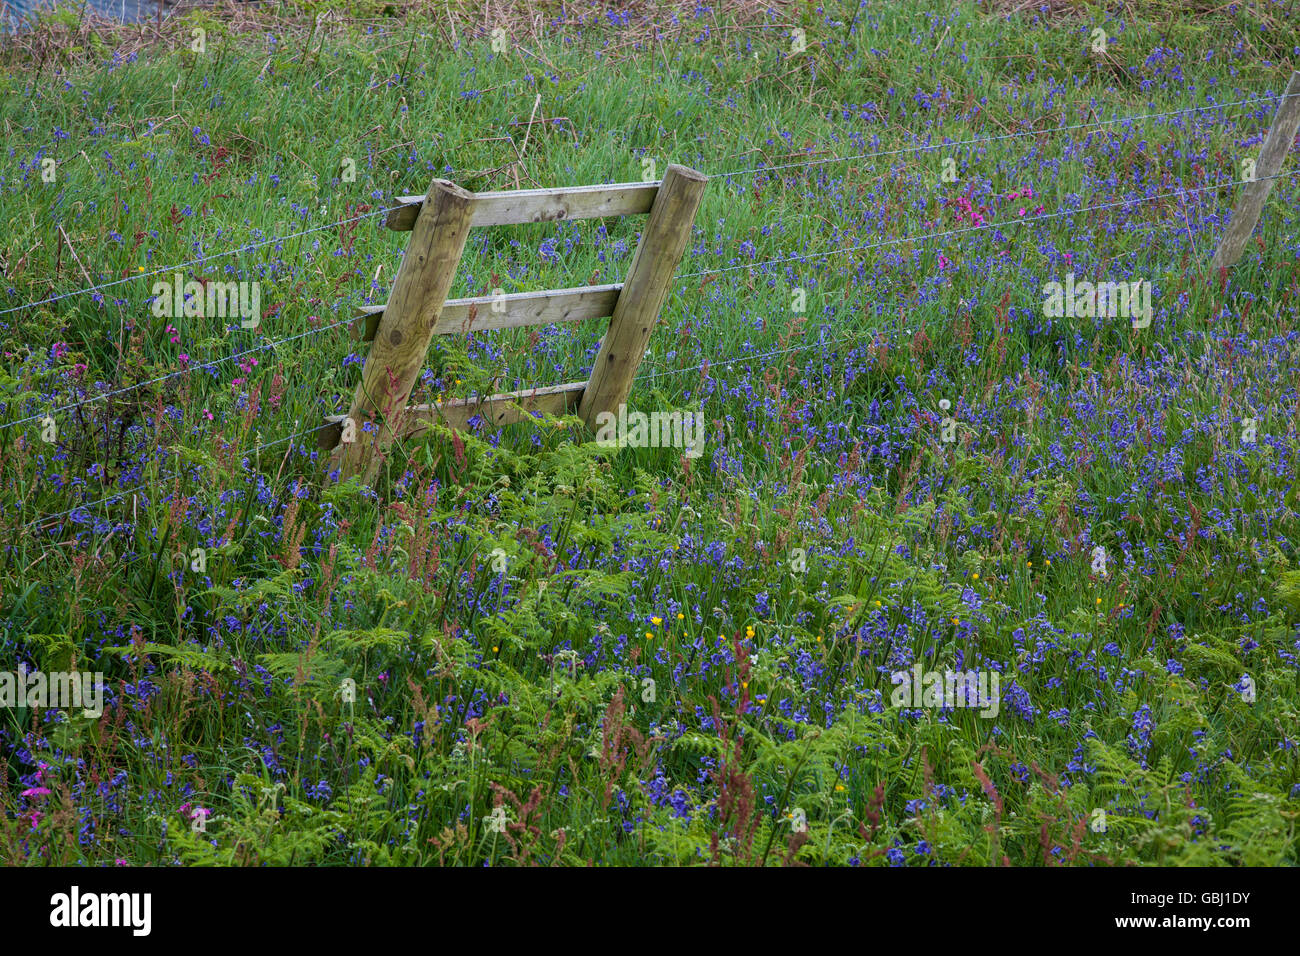 Barb wire fence in a bluebell field - Stock Image